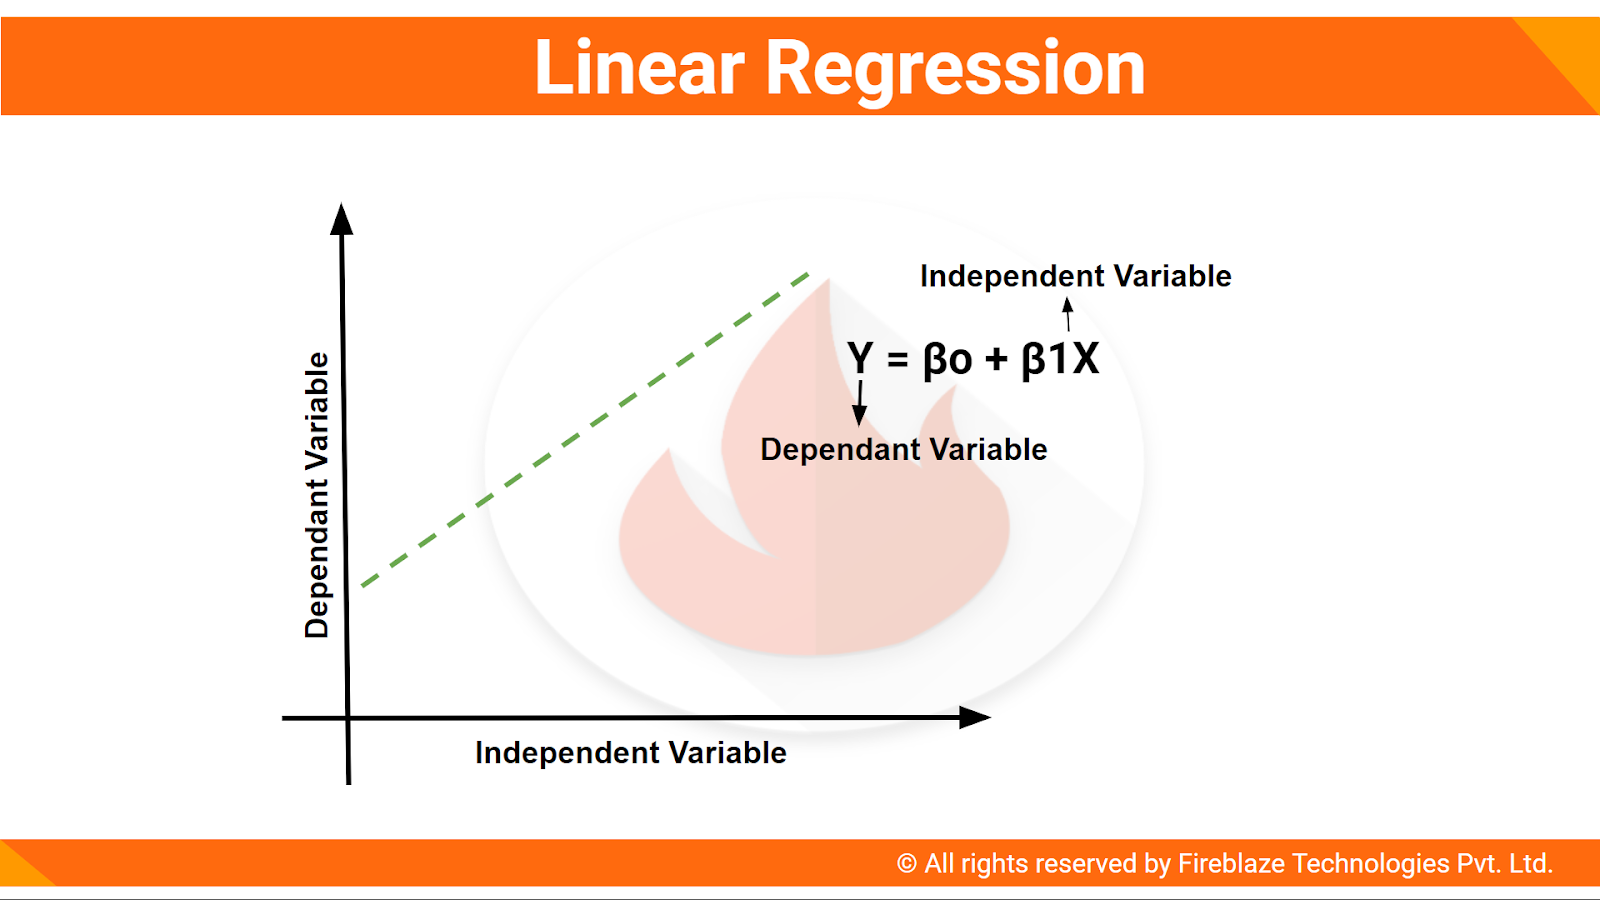 Linear Regression Algorithm in Machine Learning